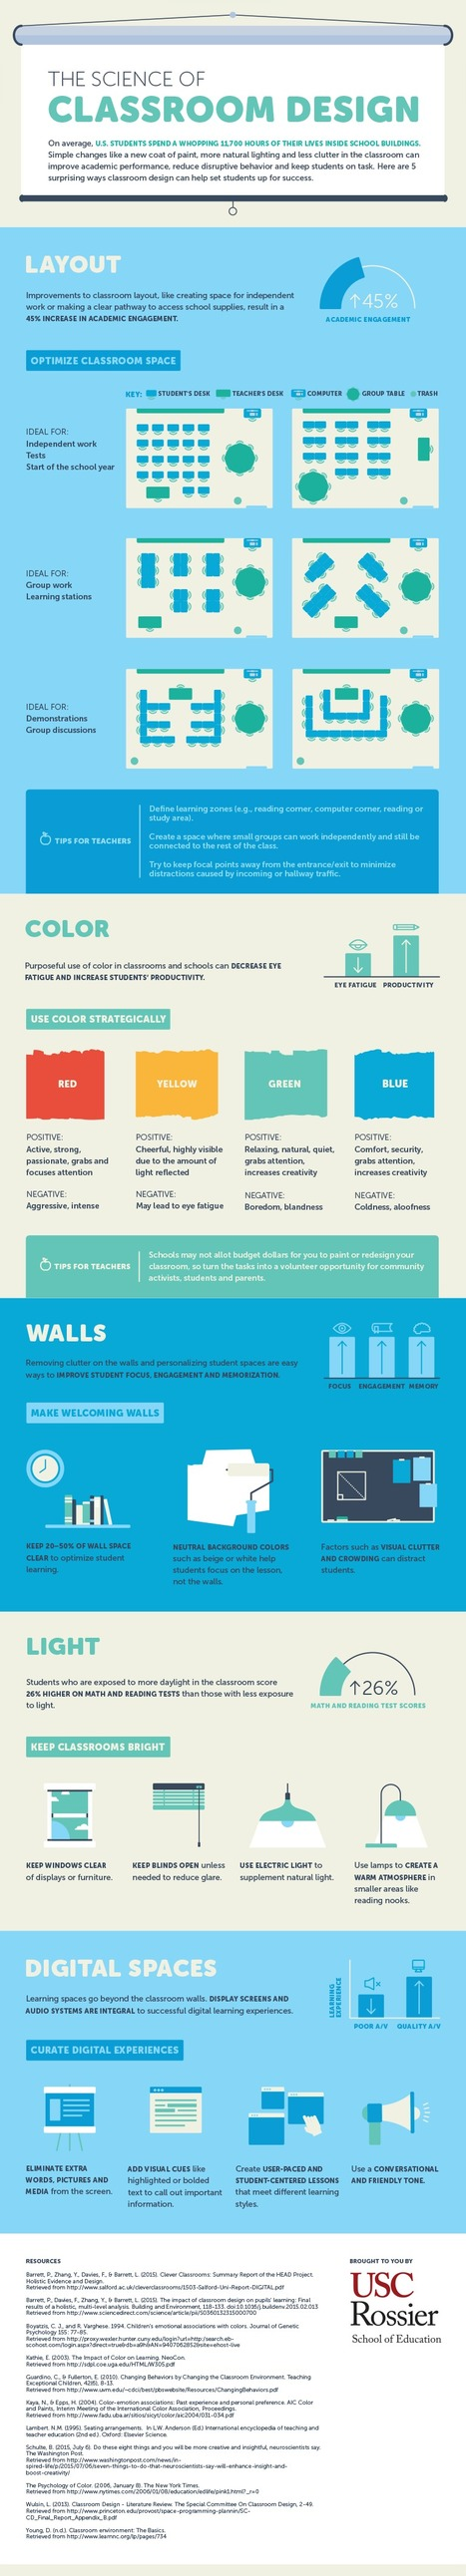 The Science of Classroom Design [Infographic] | Numérique | Scoop.it